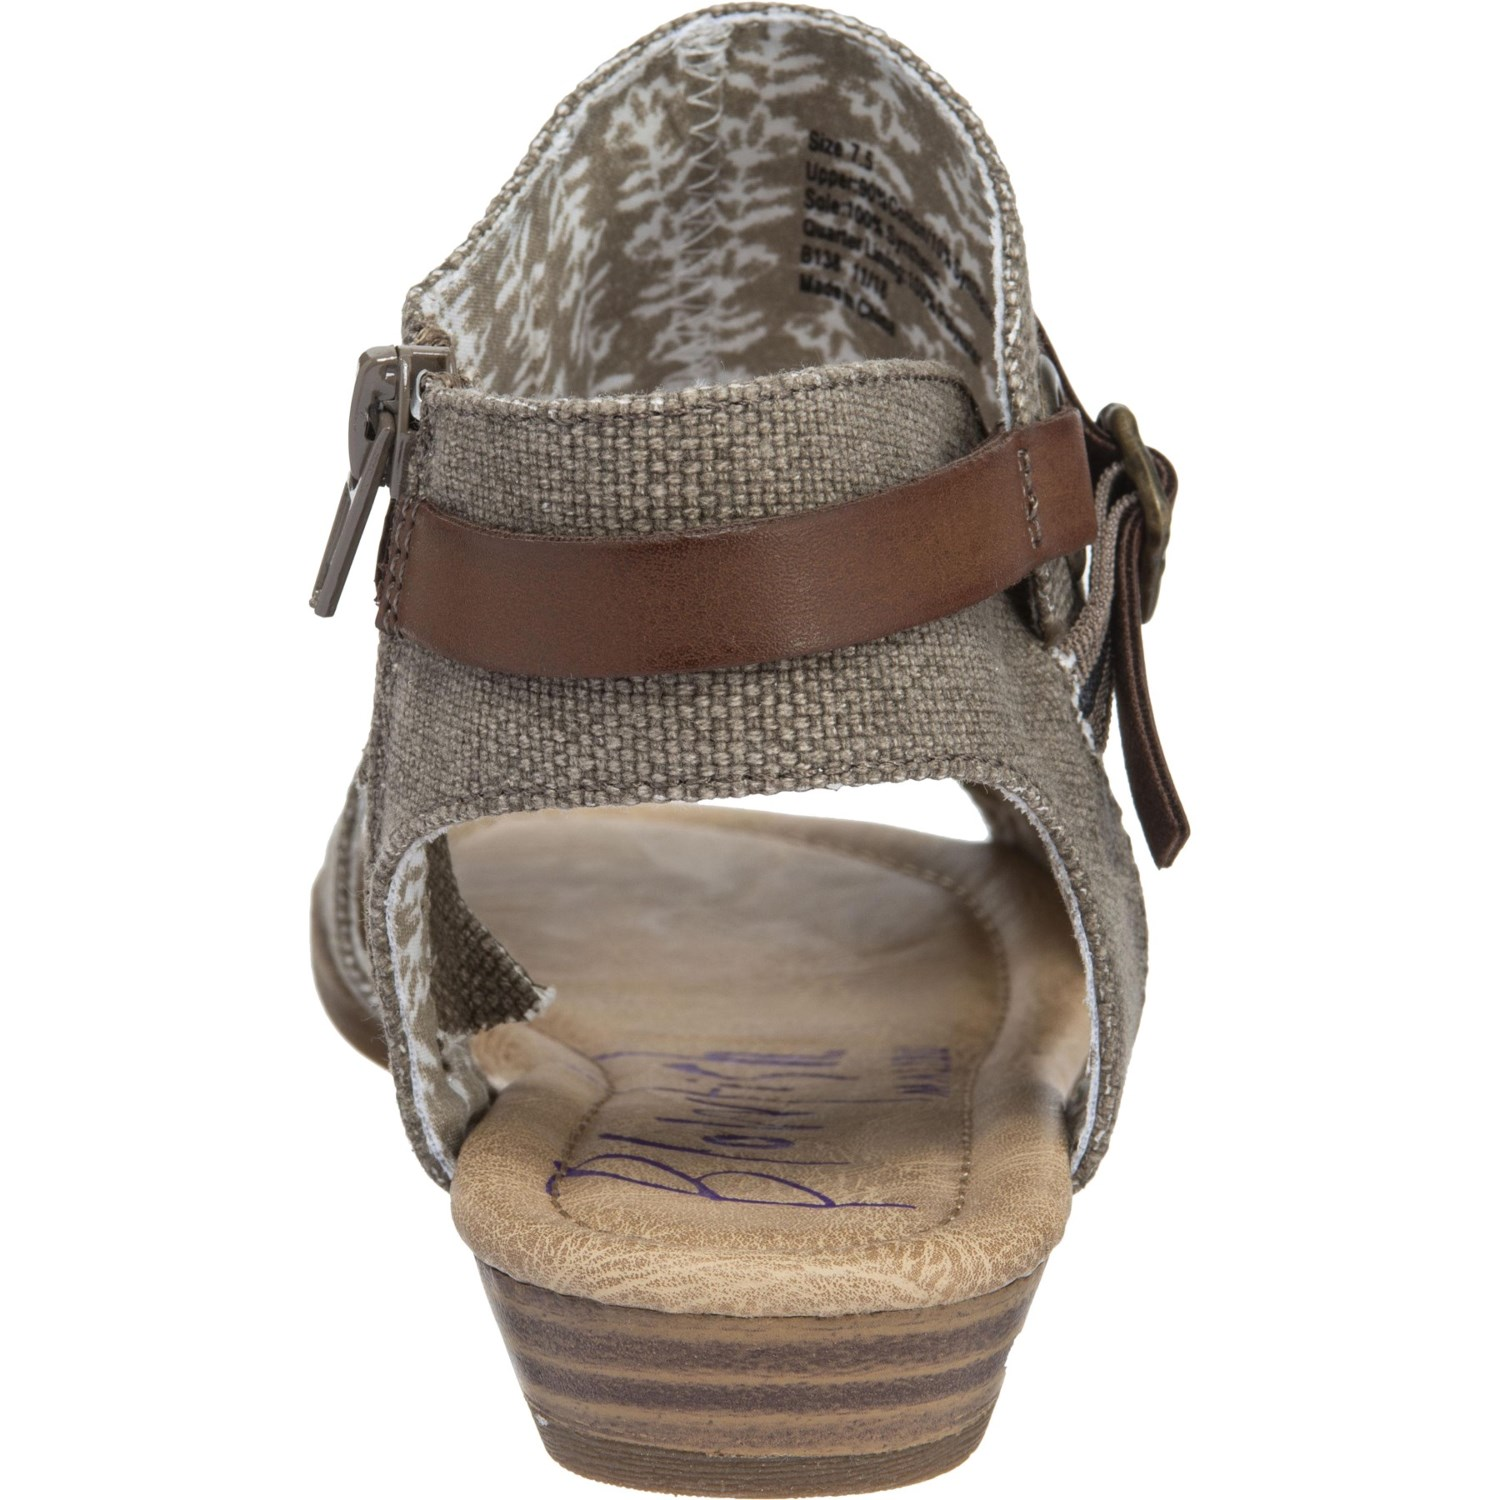 cbed910a62b5 Blowfish Brisa 2 Wedge Sandals (For Women) - Save 50%